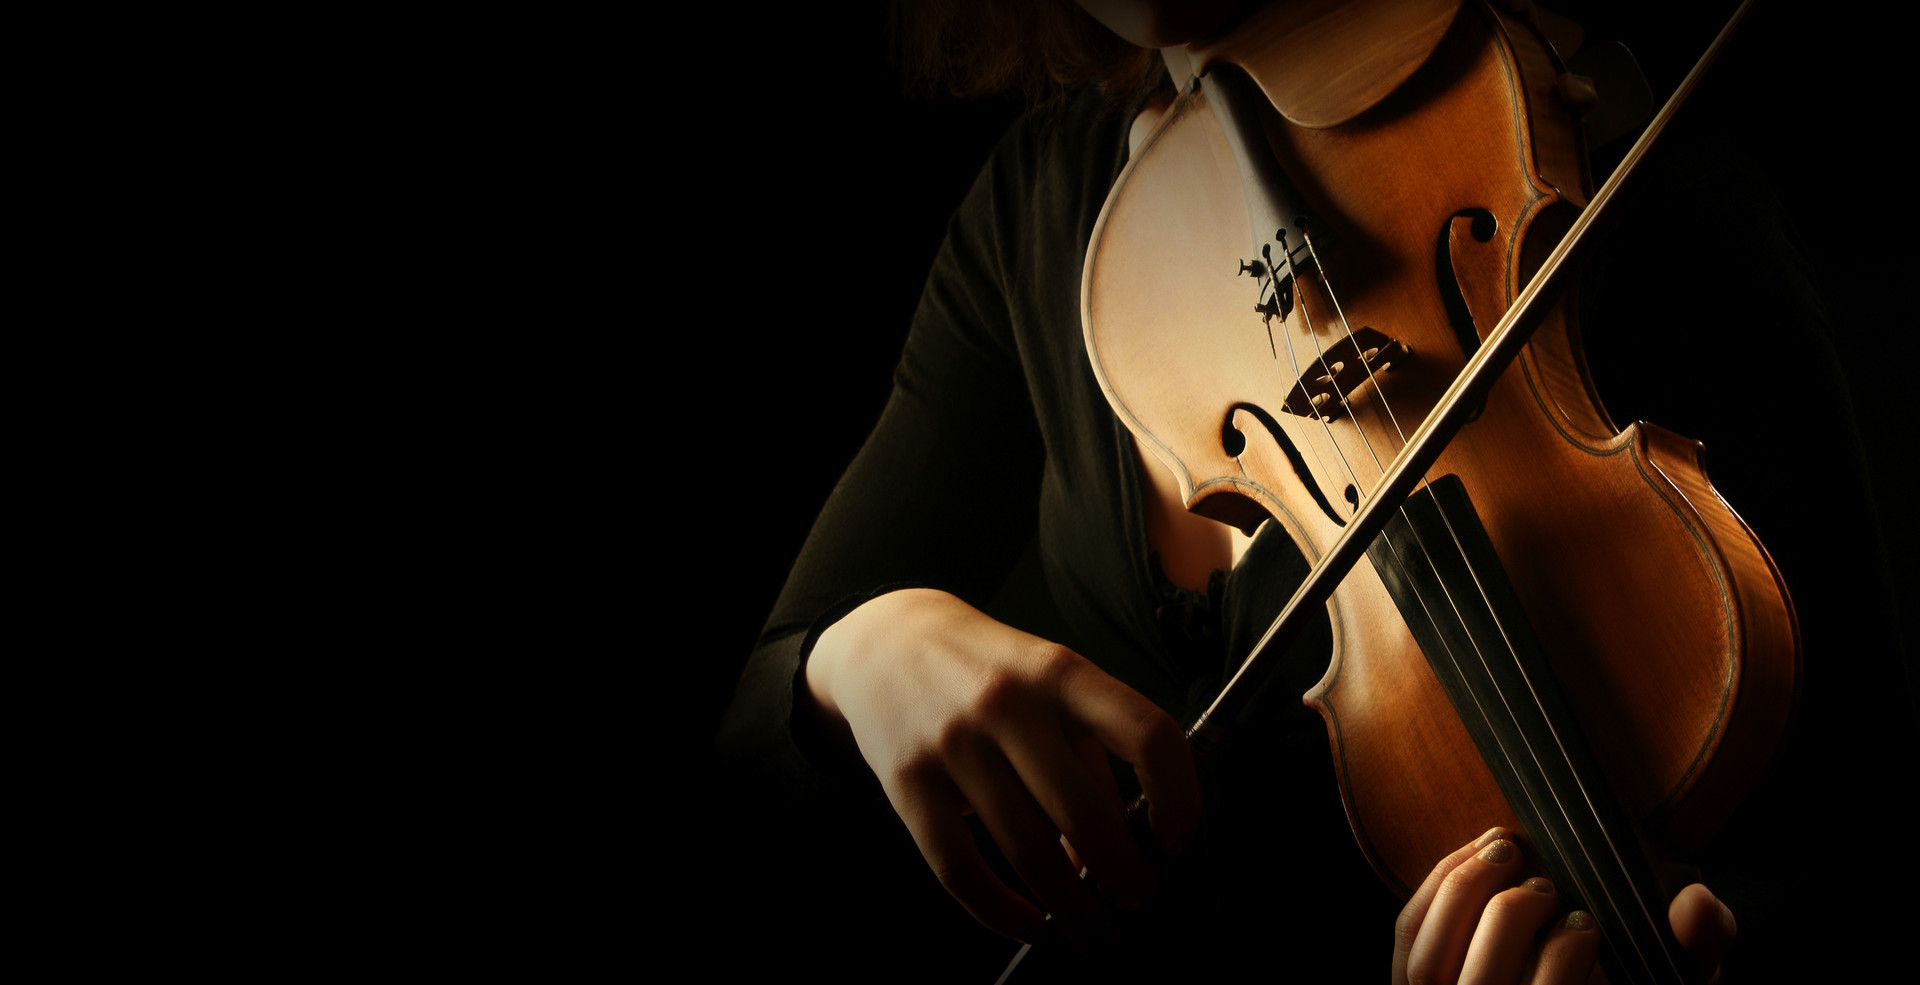 Violin player. Violinist hands playing v